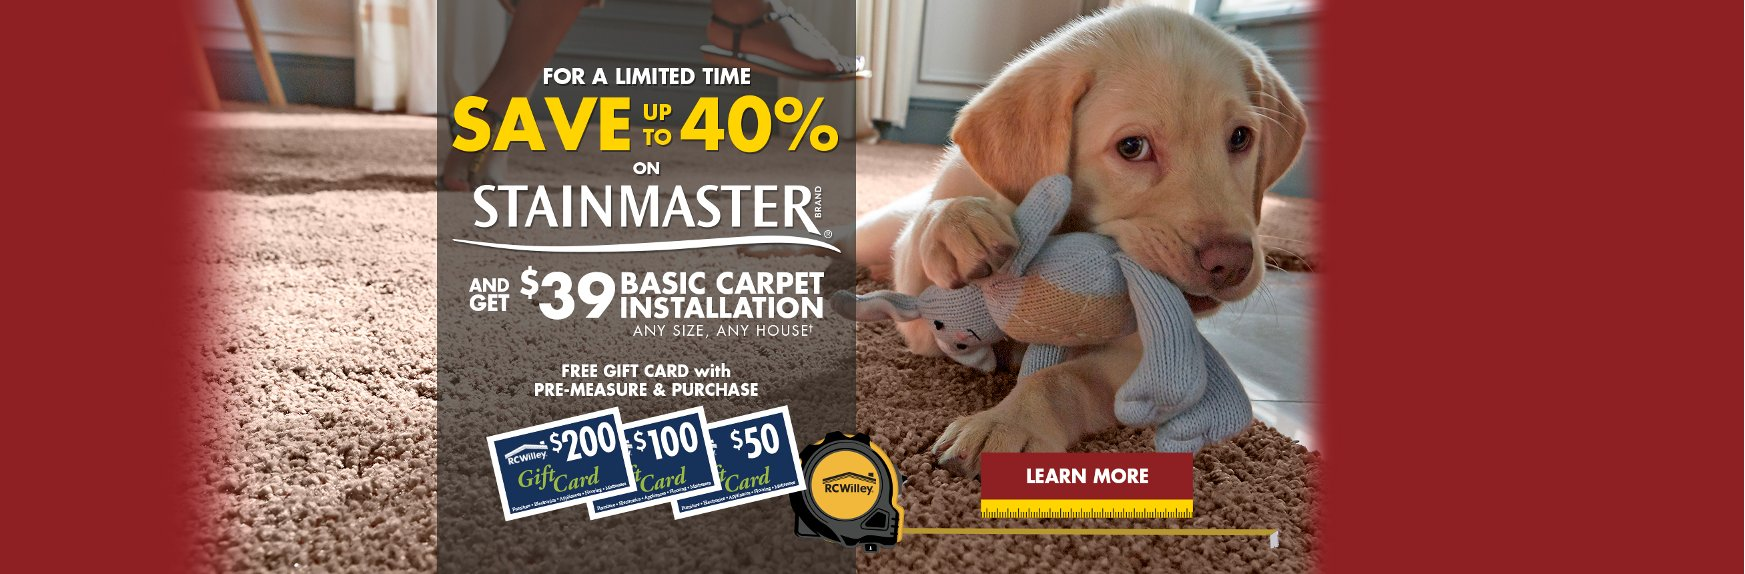 Learn More About Our Stainmaster Sales Event | Fall 2019 | Flooring Store | RC Willey